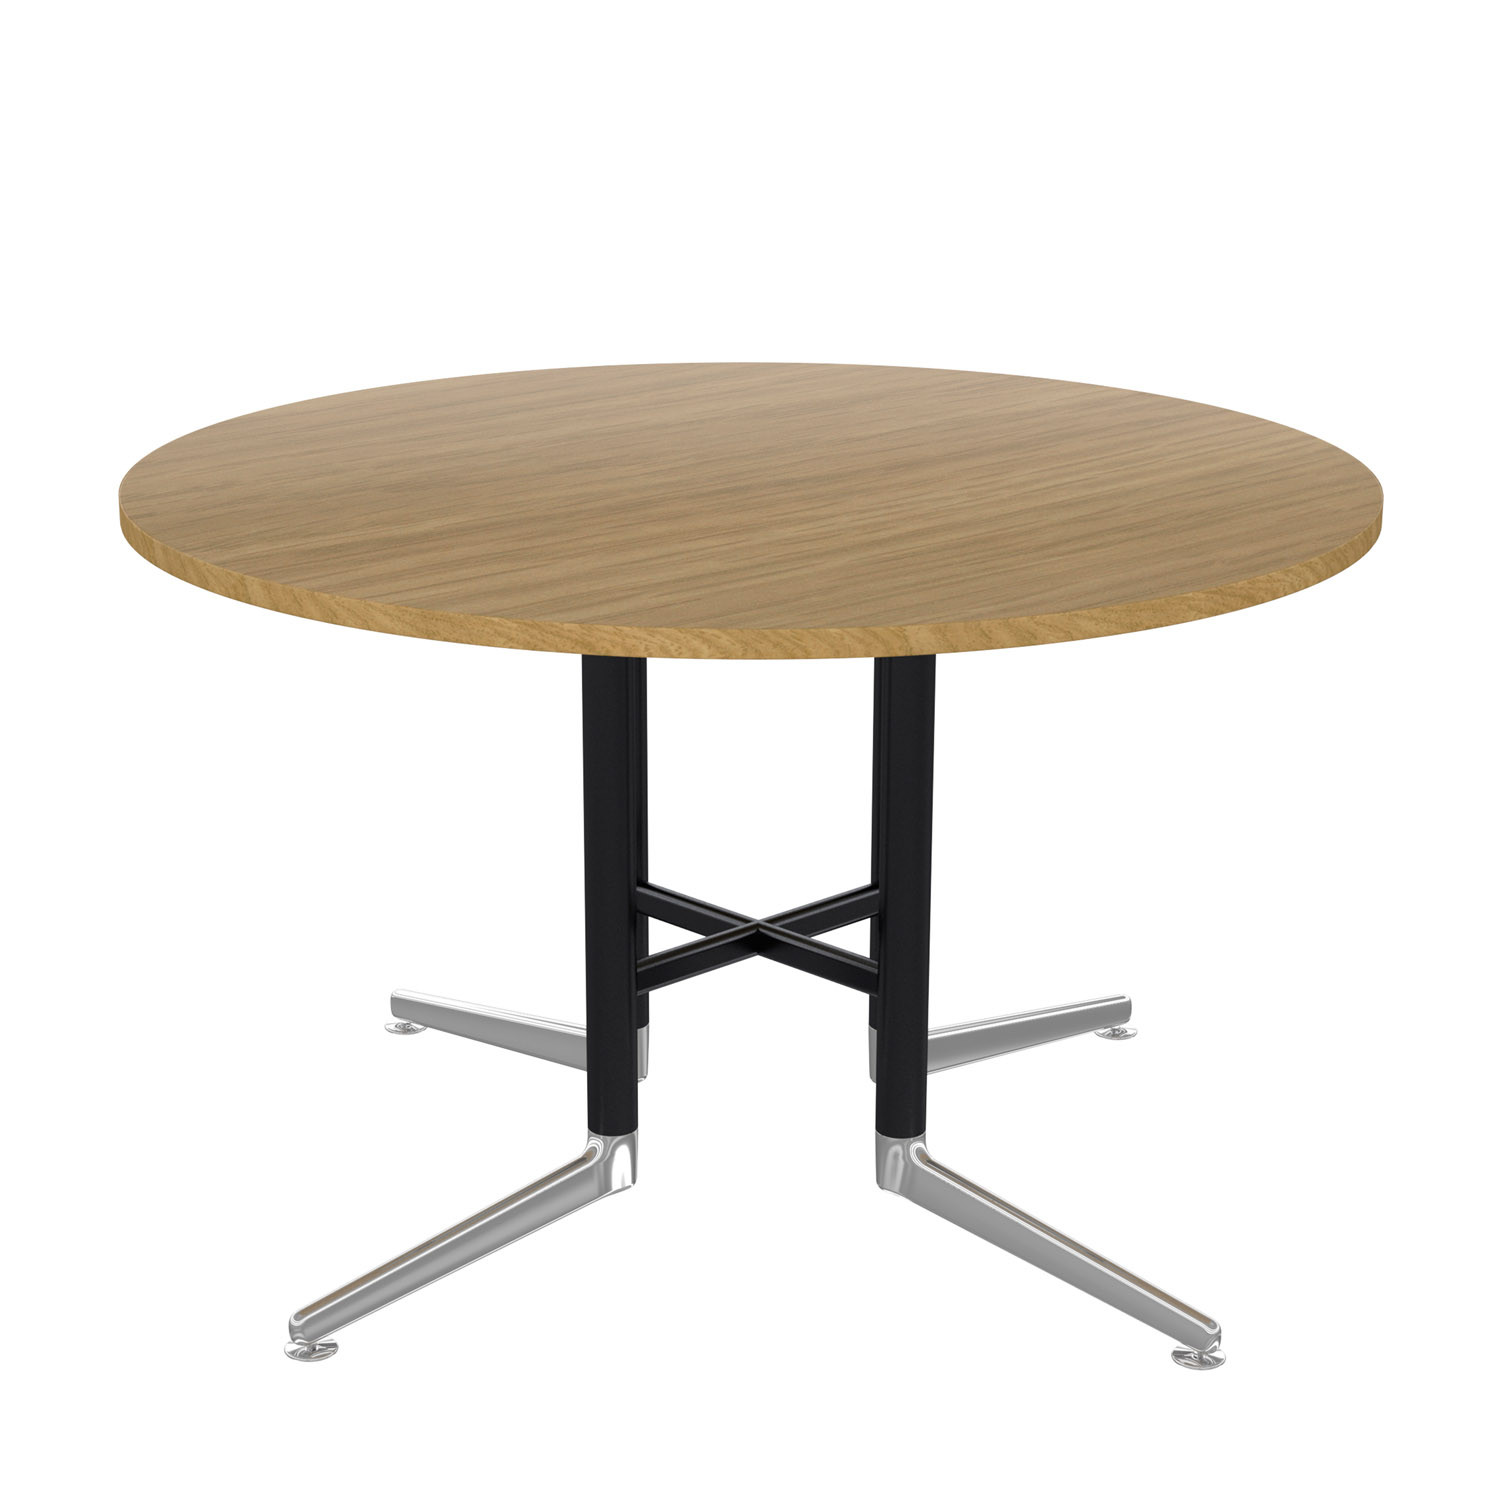 Ad-Lib Circular Meeting Table